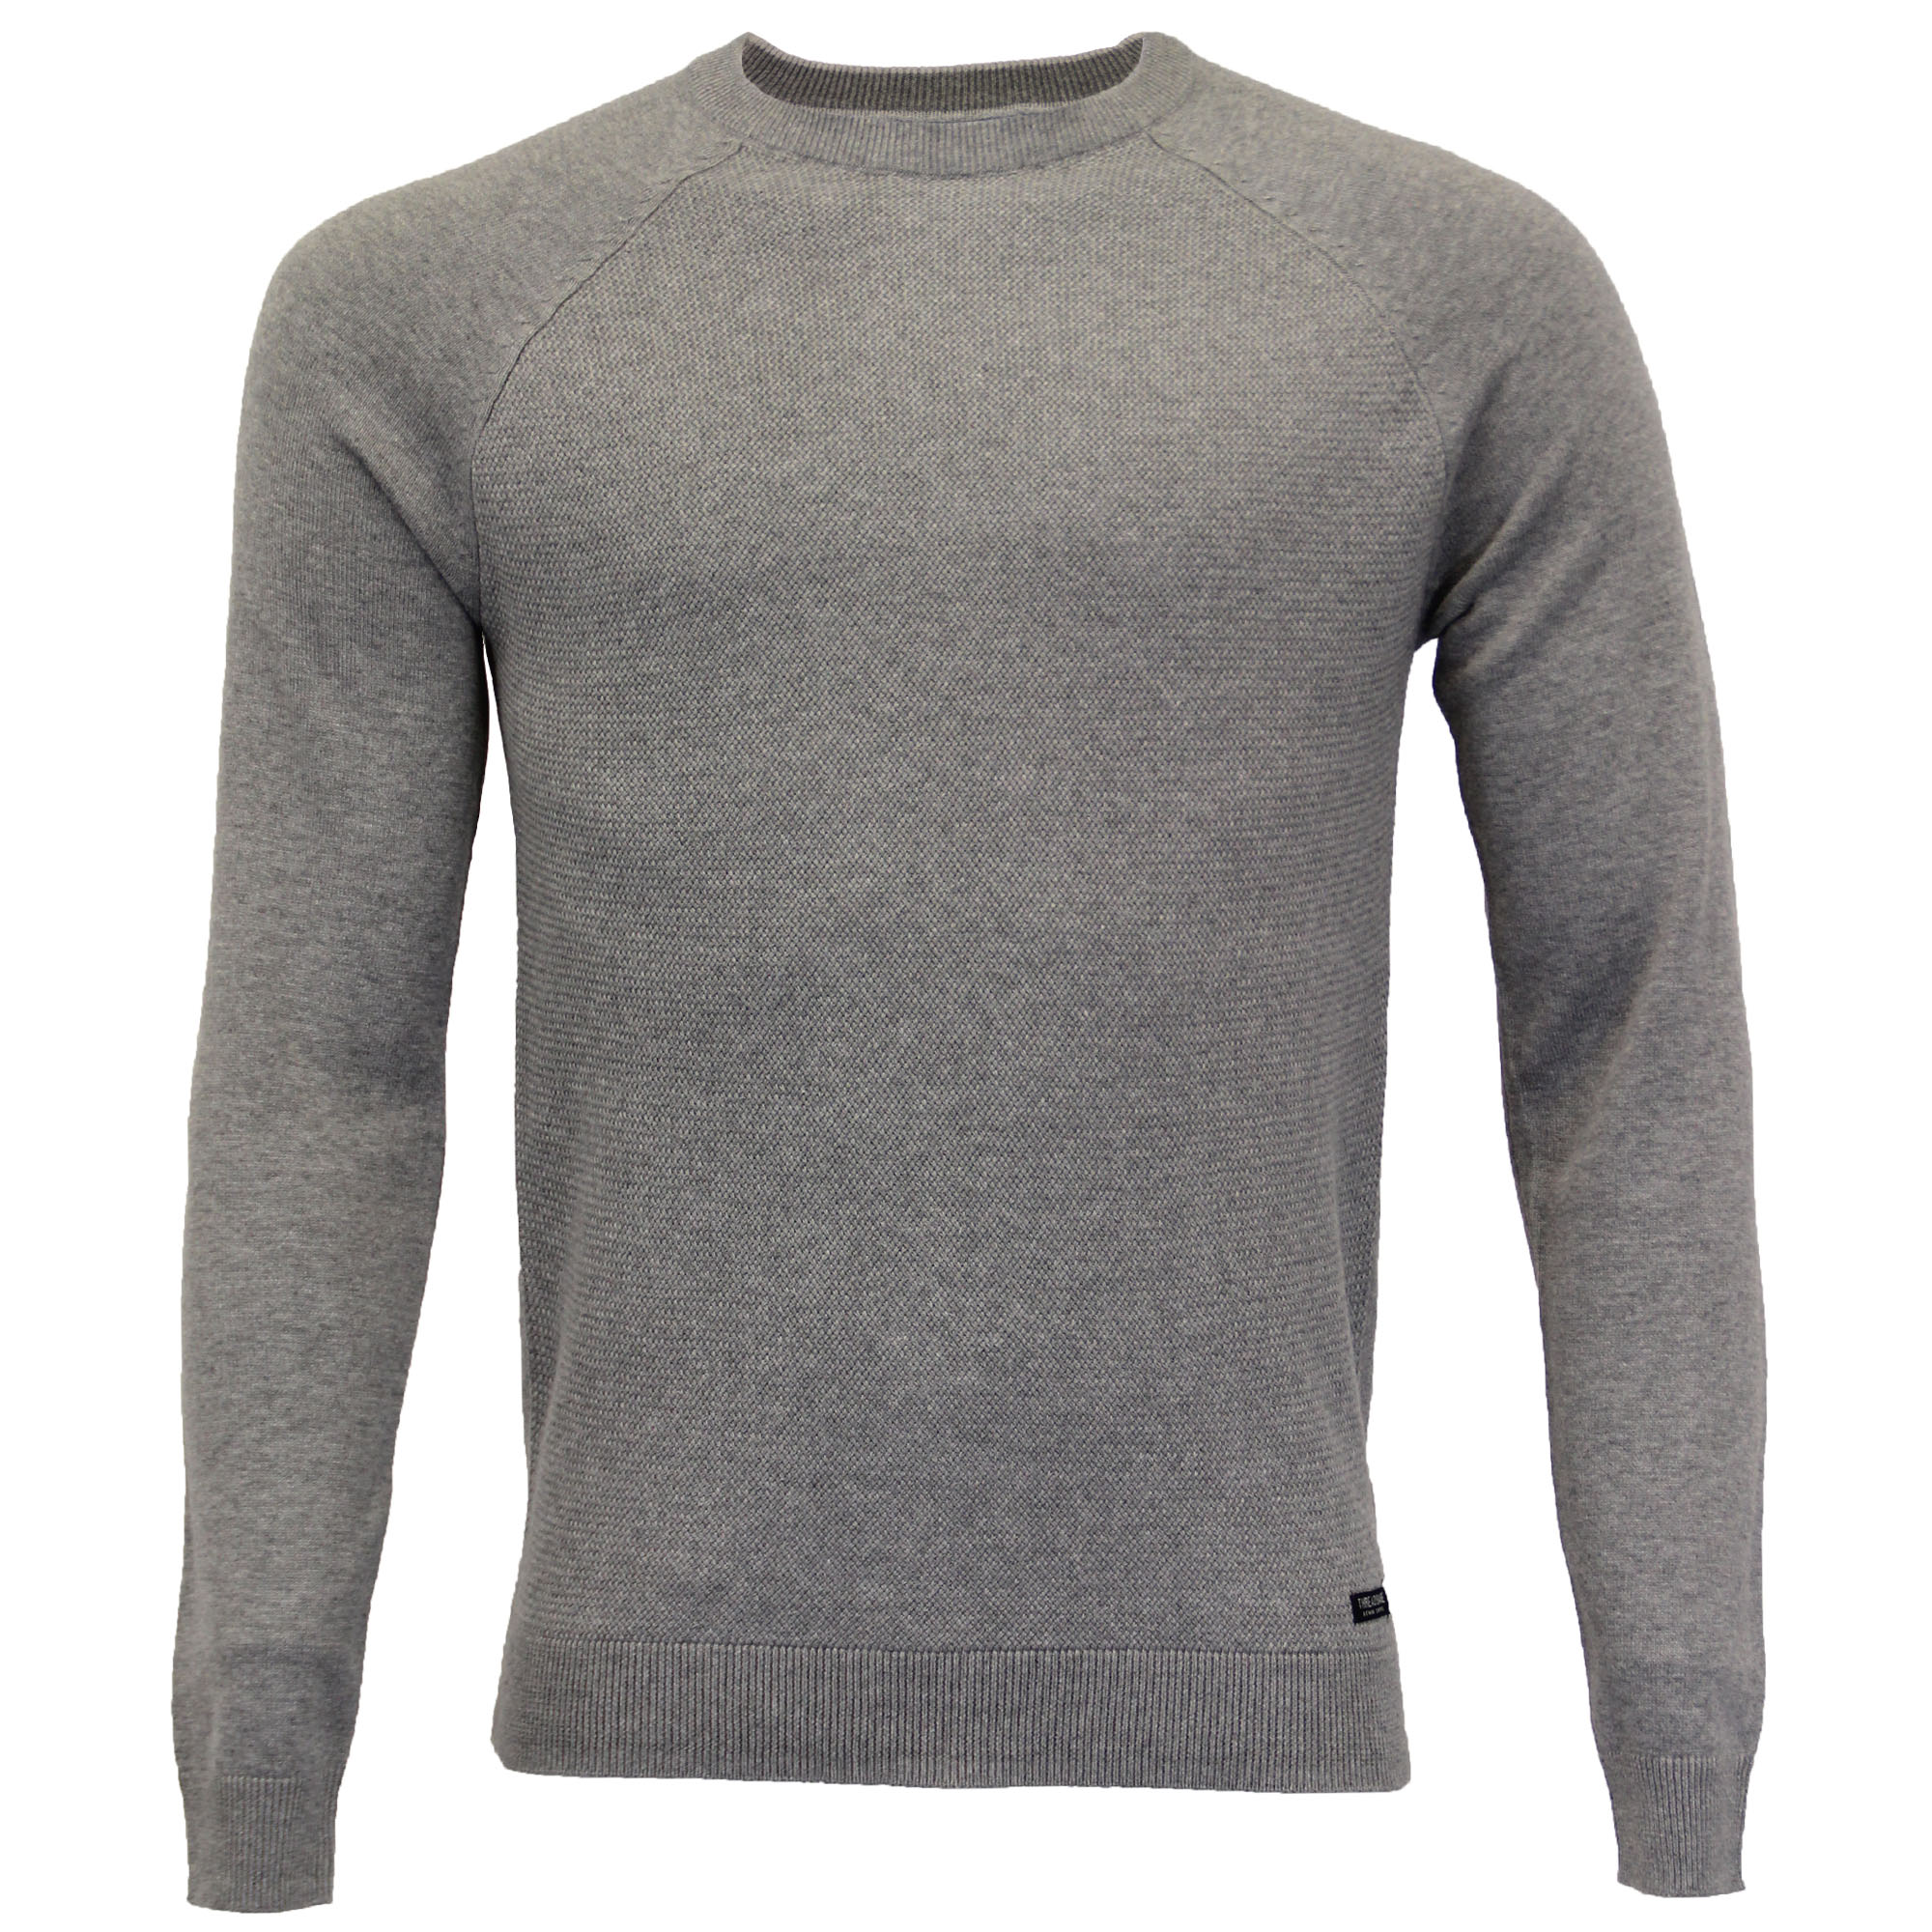 Mens-Jumper-Threadbare-Knitted-Sweater-Pullover-Top-Crew-Neck-Casual-Winter-New thumbnail 8